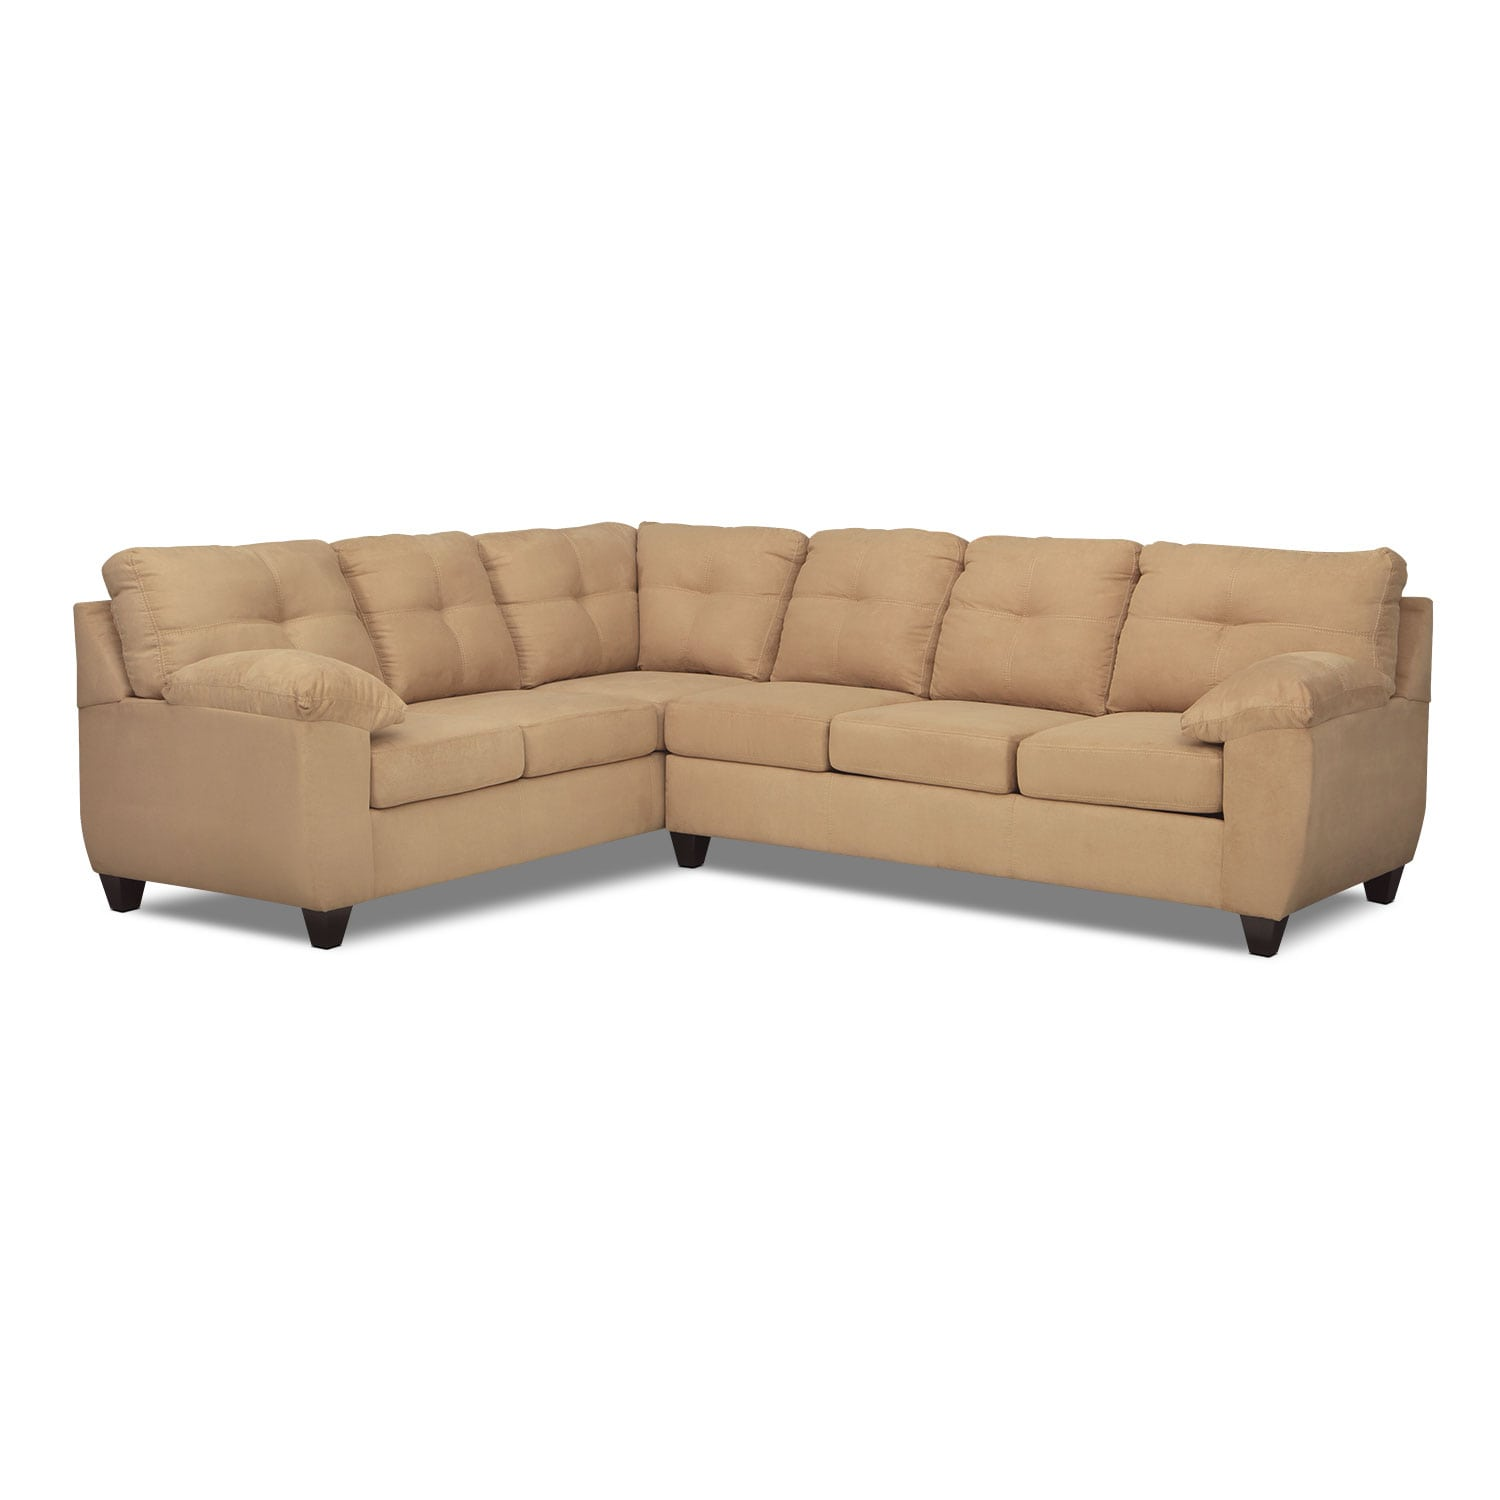 Rialto 2-Piece Sectional with Right-Facing Innerspring Sleeper - Camel